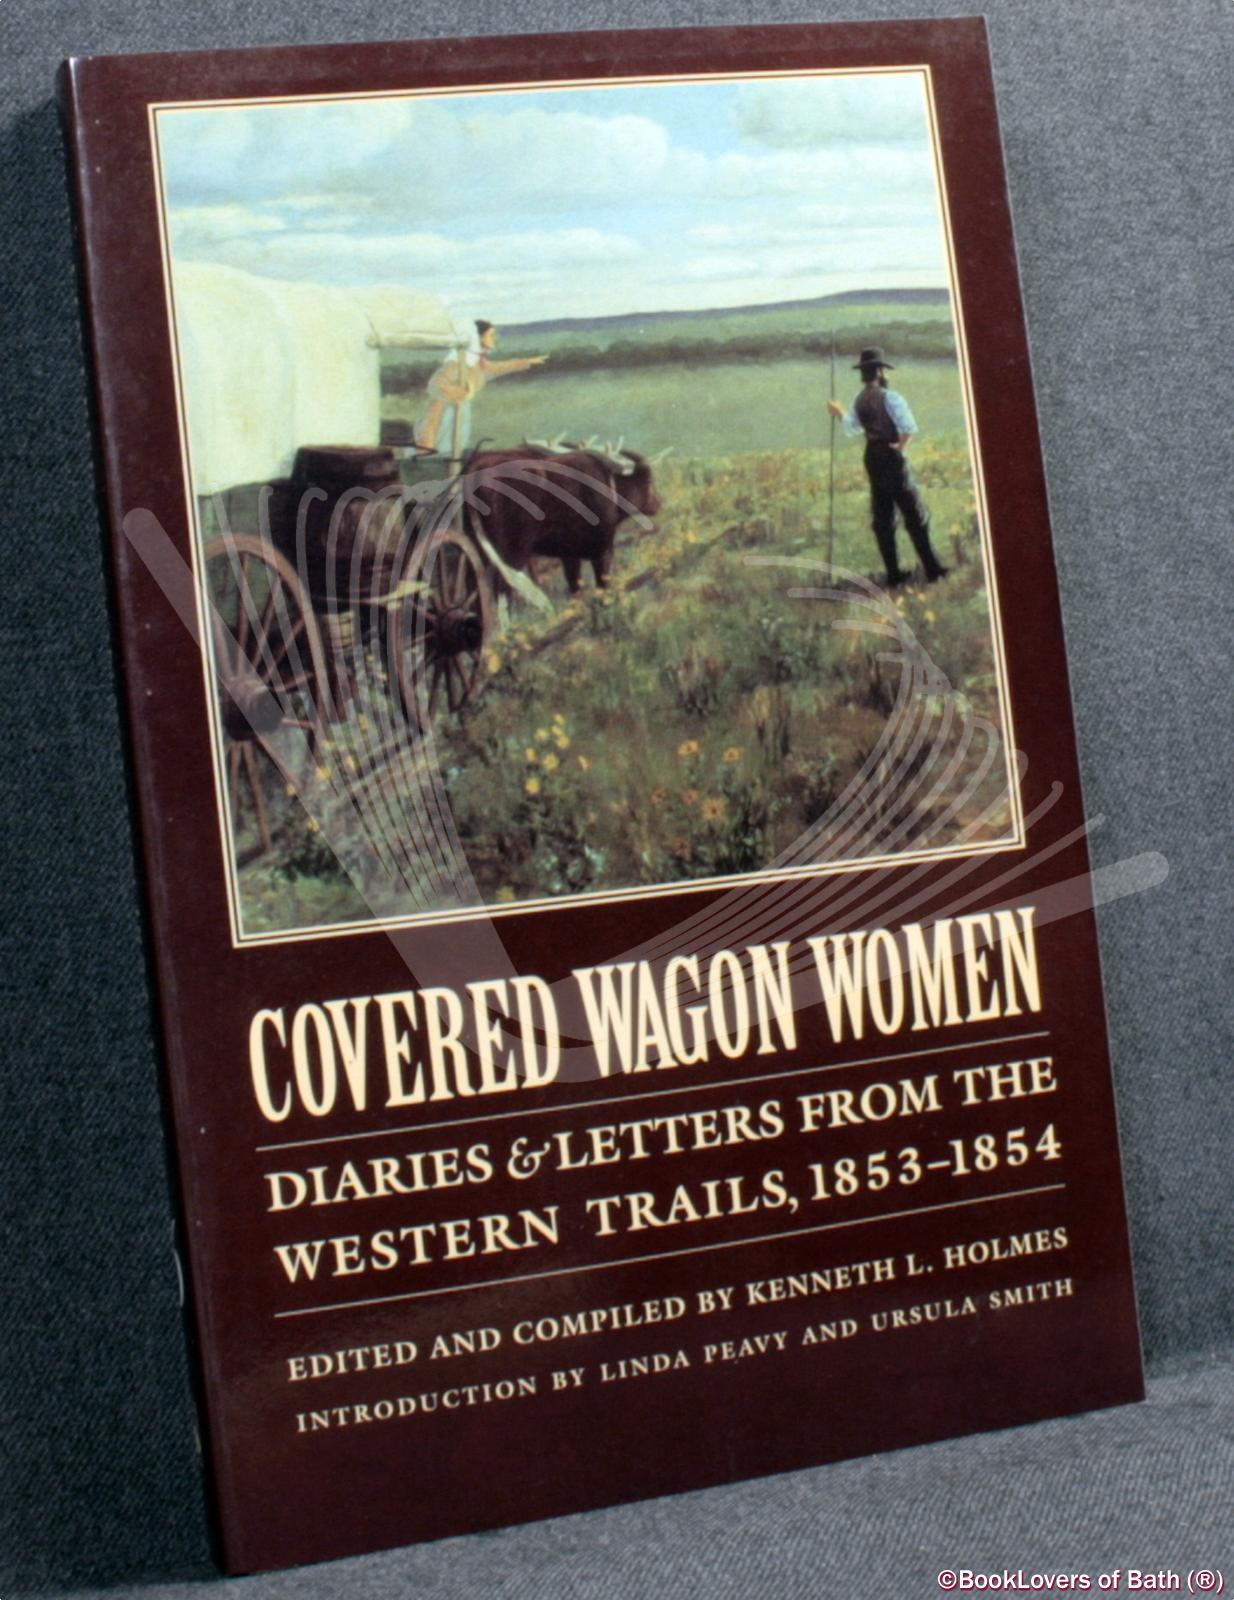 Covered Wagon Women: Diaries & Letters from the Western Trails 1853-1854 - Edited by Kenneth L. Holmes